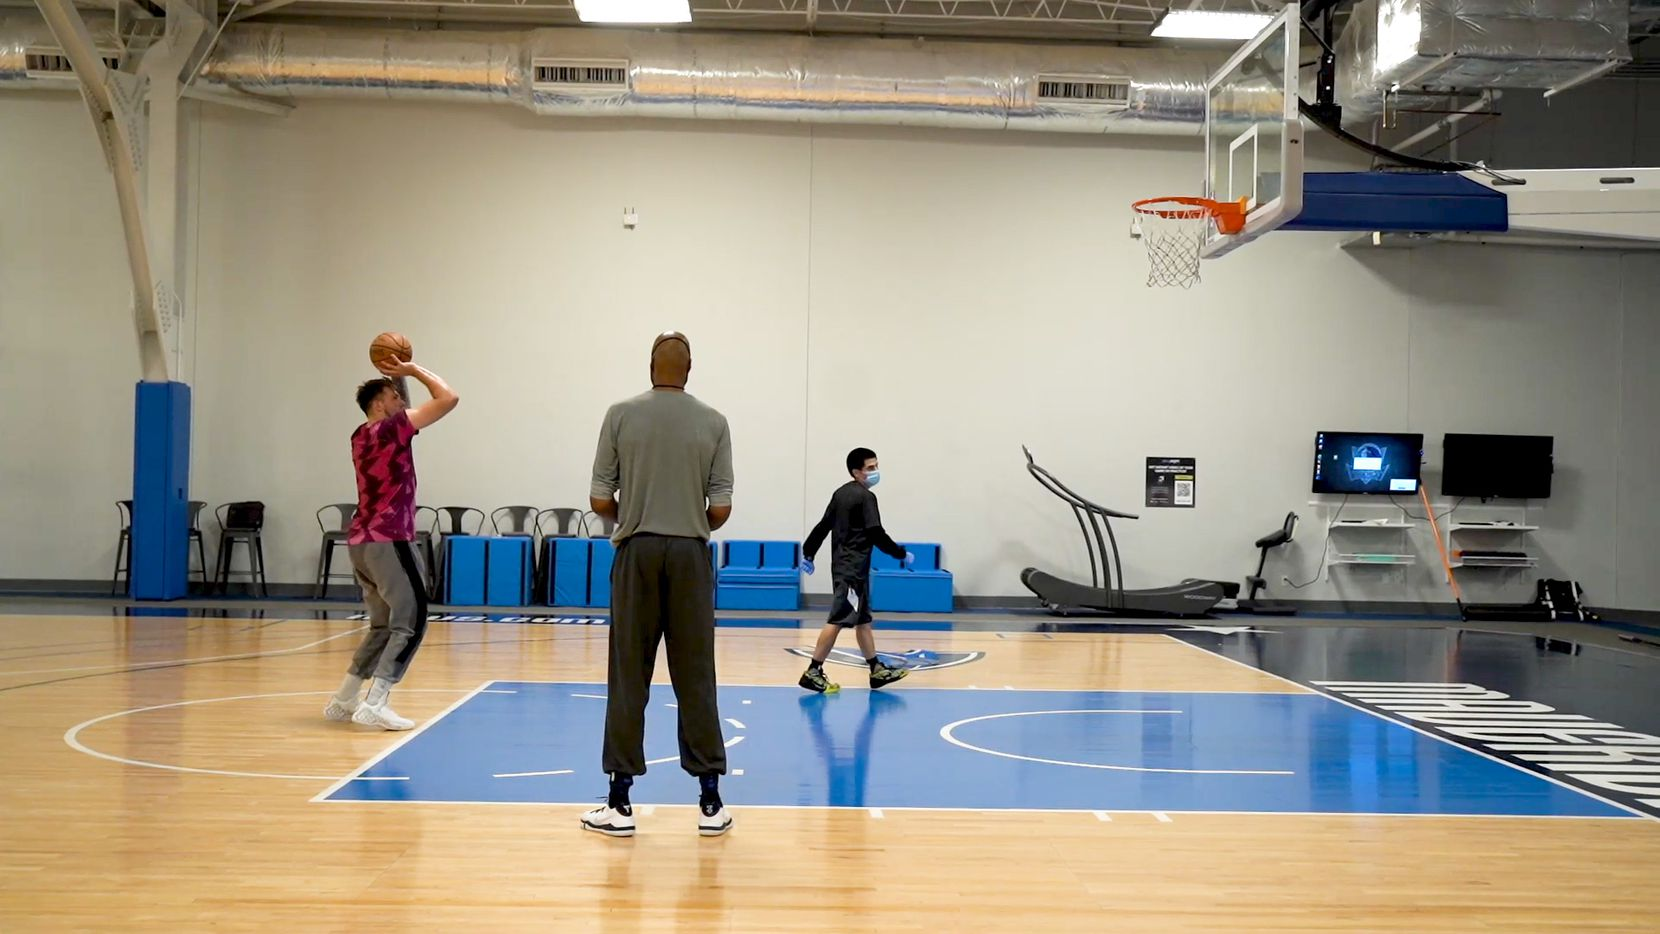 Dallas Mavericks guard Luka Doncic practices free throws from the first mandatory workout on July 1, 2020. Doncic and others played at the team's practice facility for the first time since the coronavirus pandemic started in Dallas, Tex.  (Photo courtesy Dallas Mavericks)